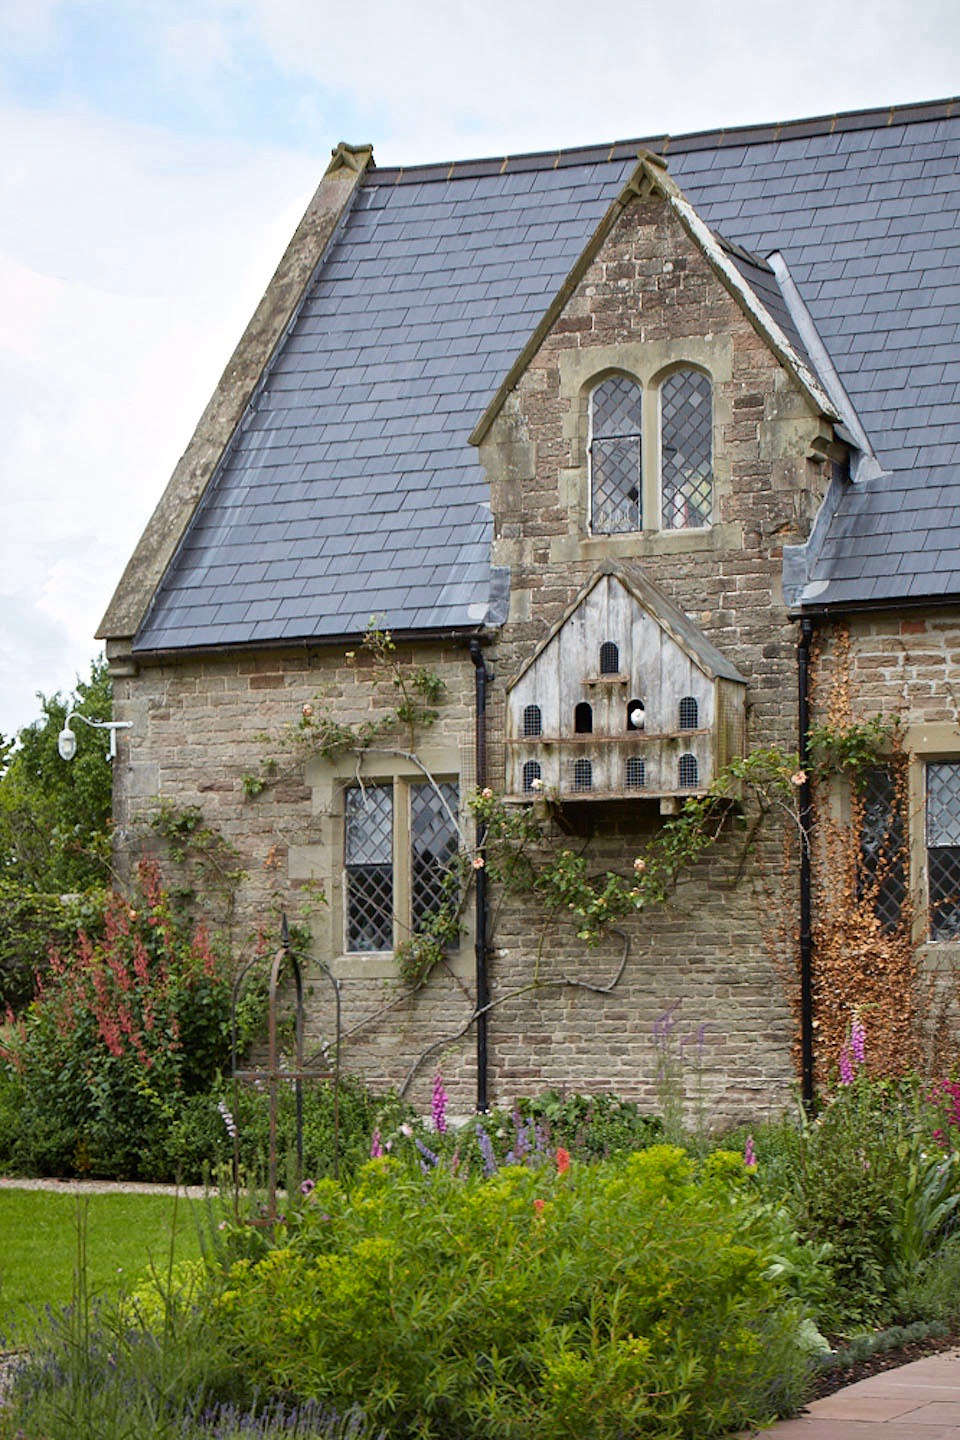 For many gardeners a timber dovecote added to the gable end of a country house or freestanding in a lush orchard or meadow is a bucolic symbol of a time gone by.